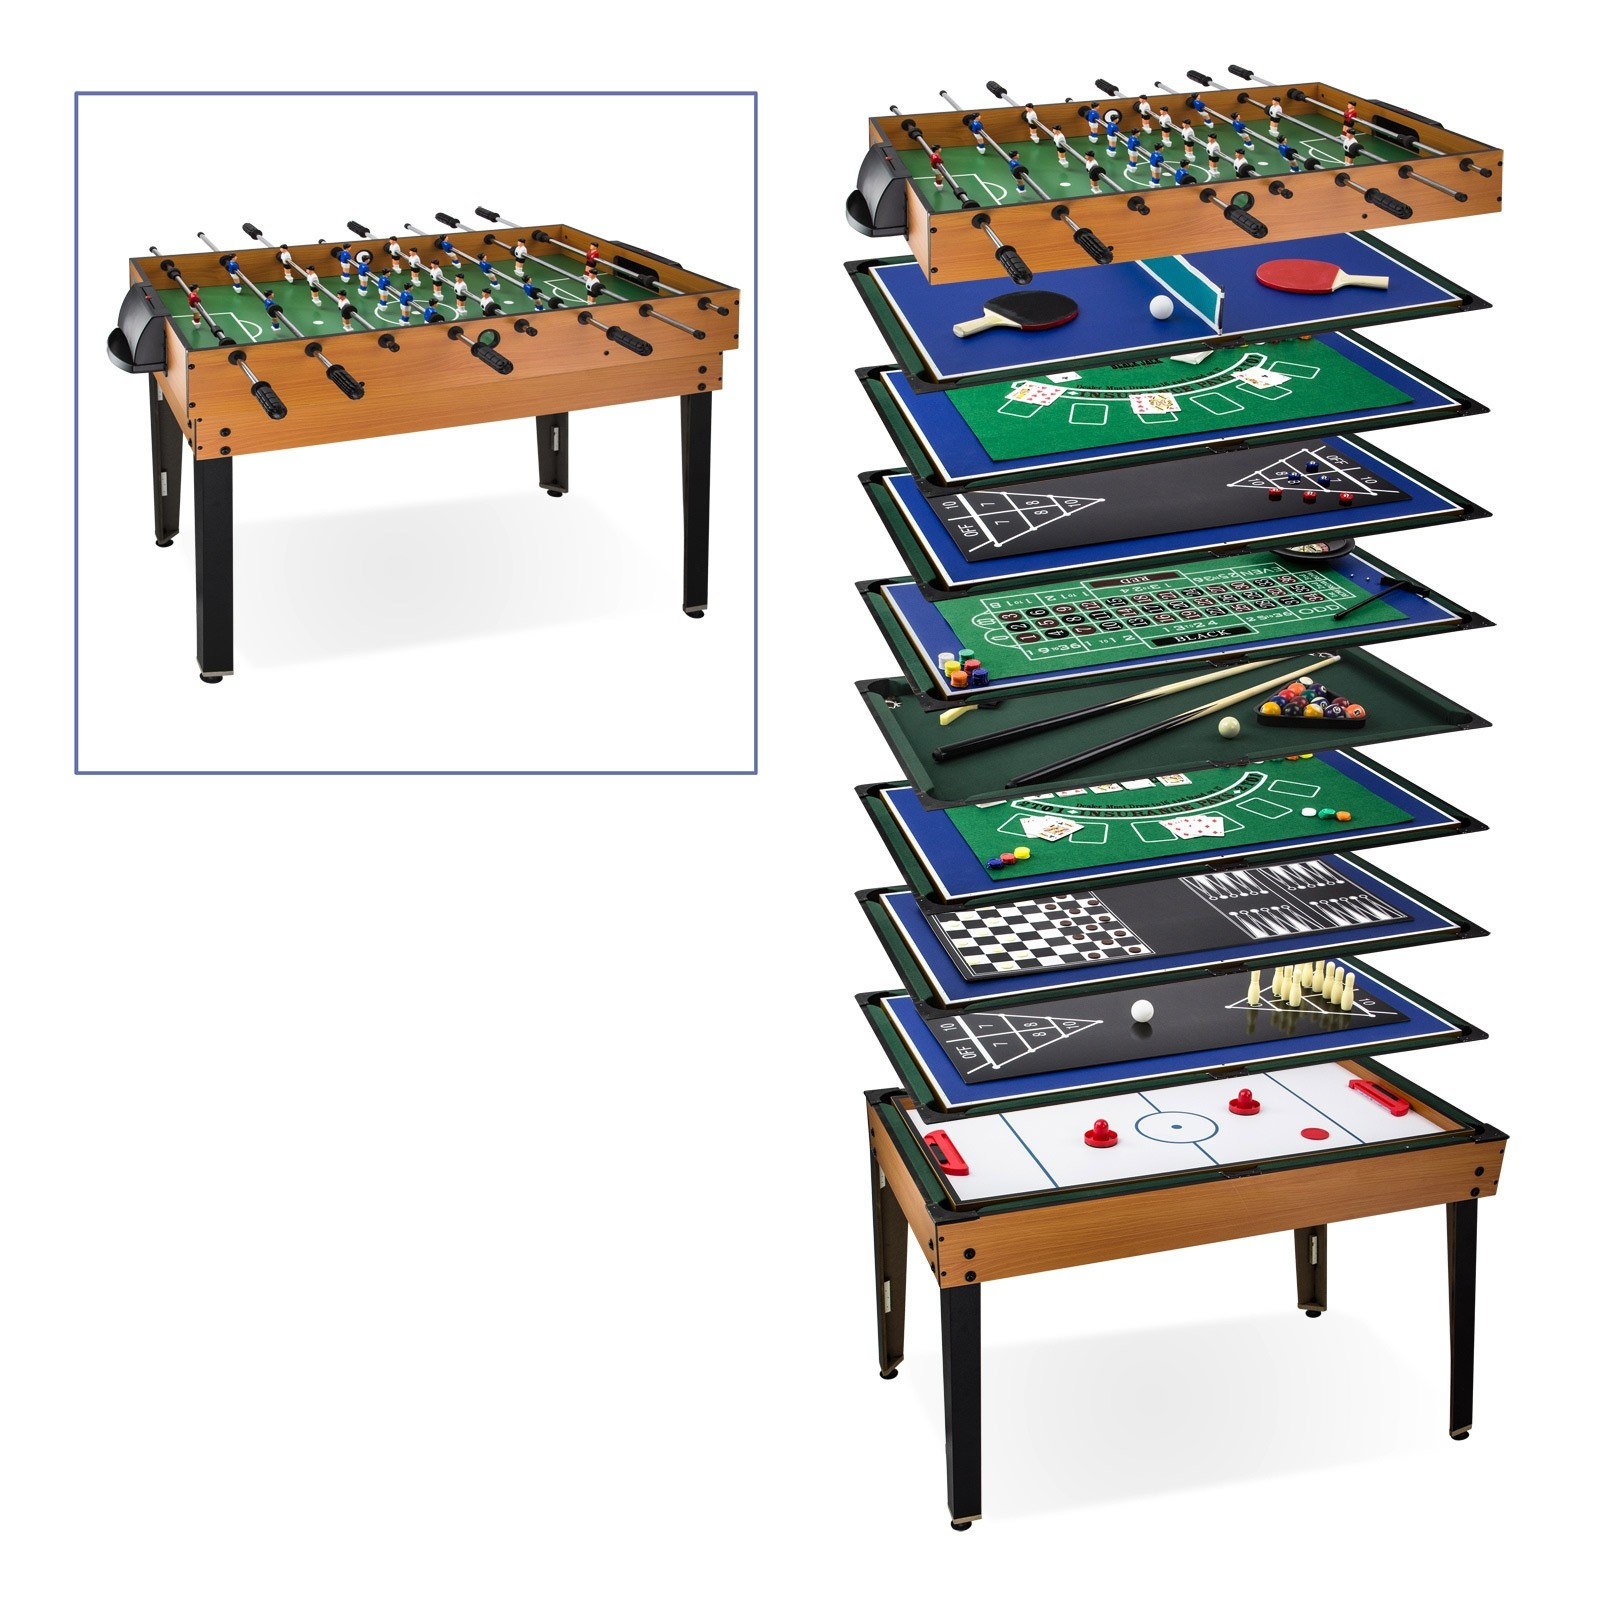 Multi spieltisch 15 in 1 tischkicker billard bowling u for Table de multi